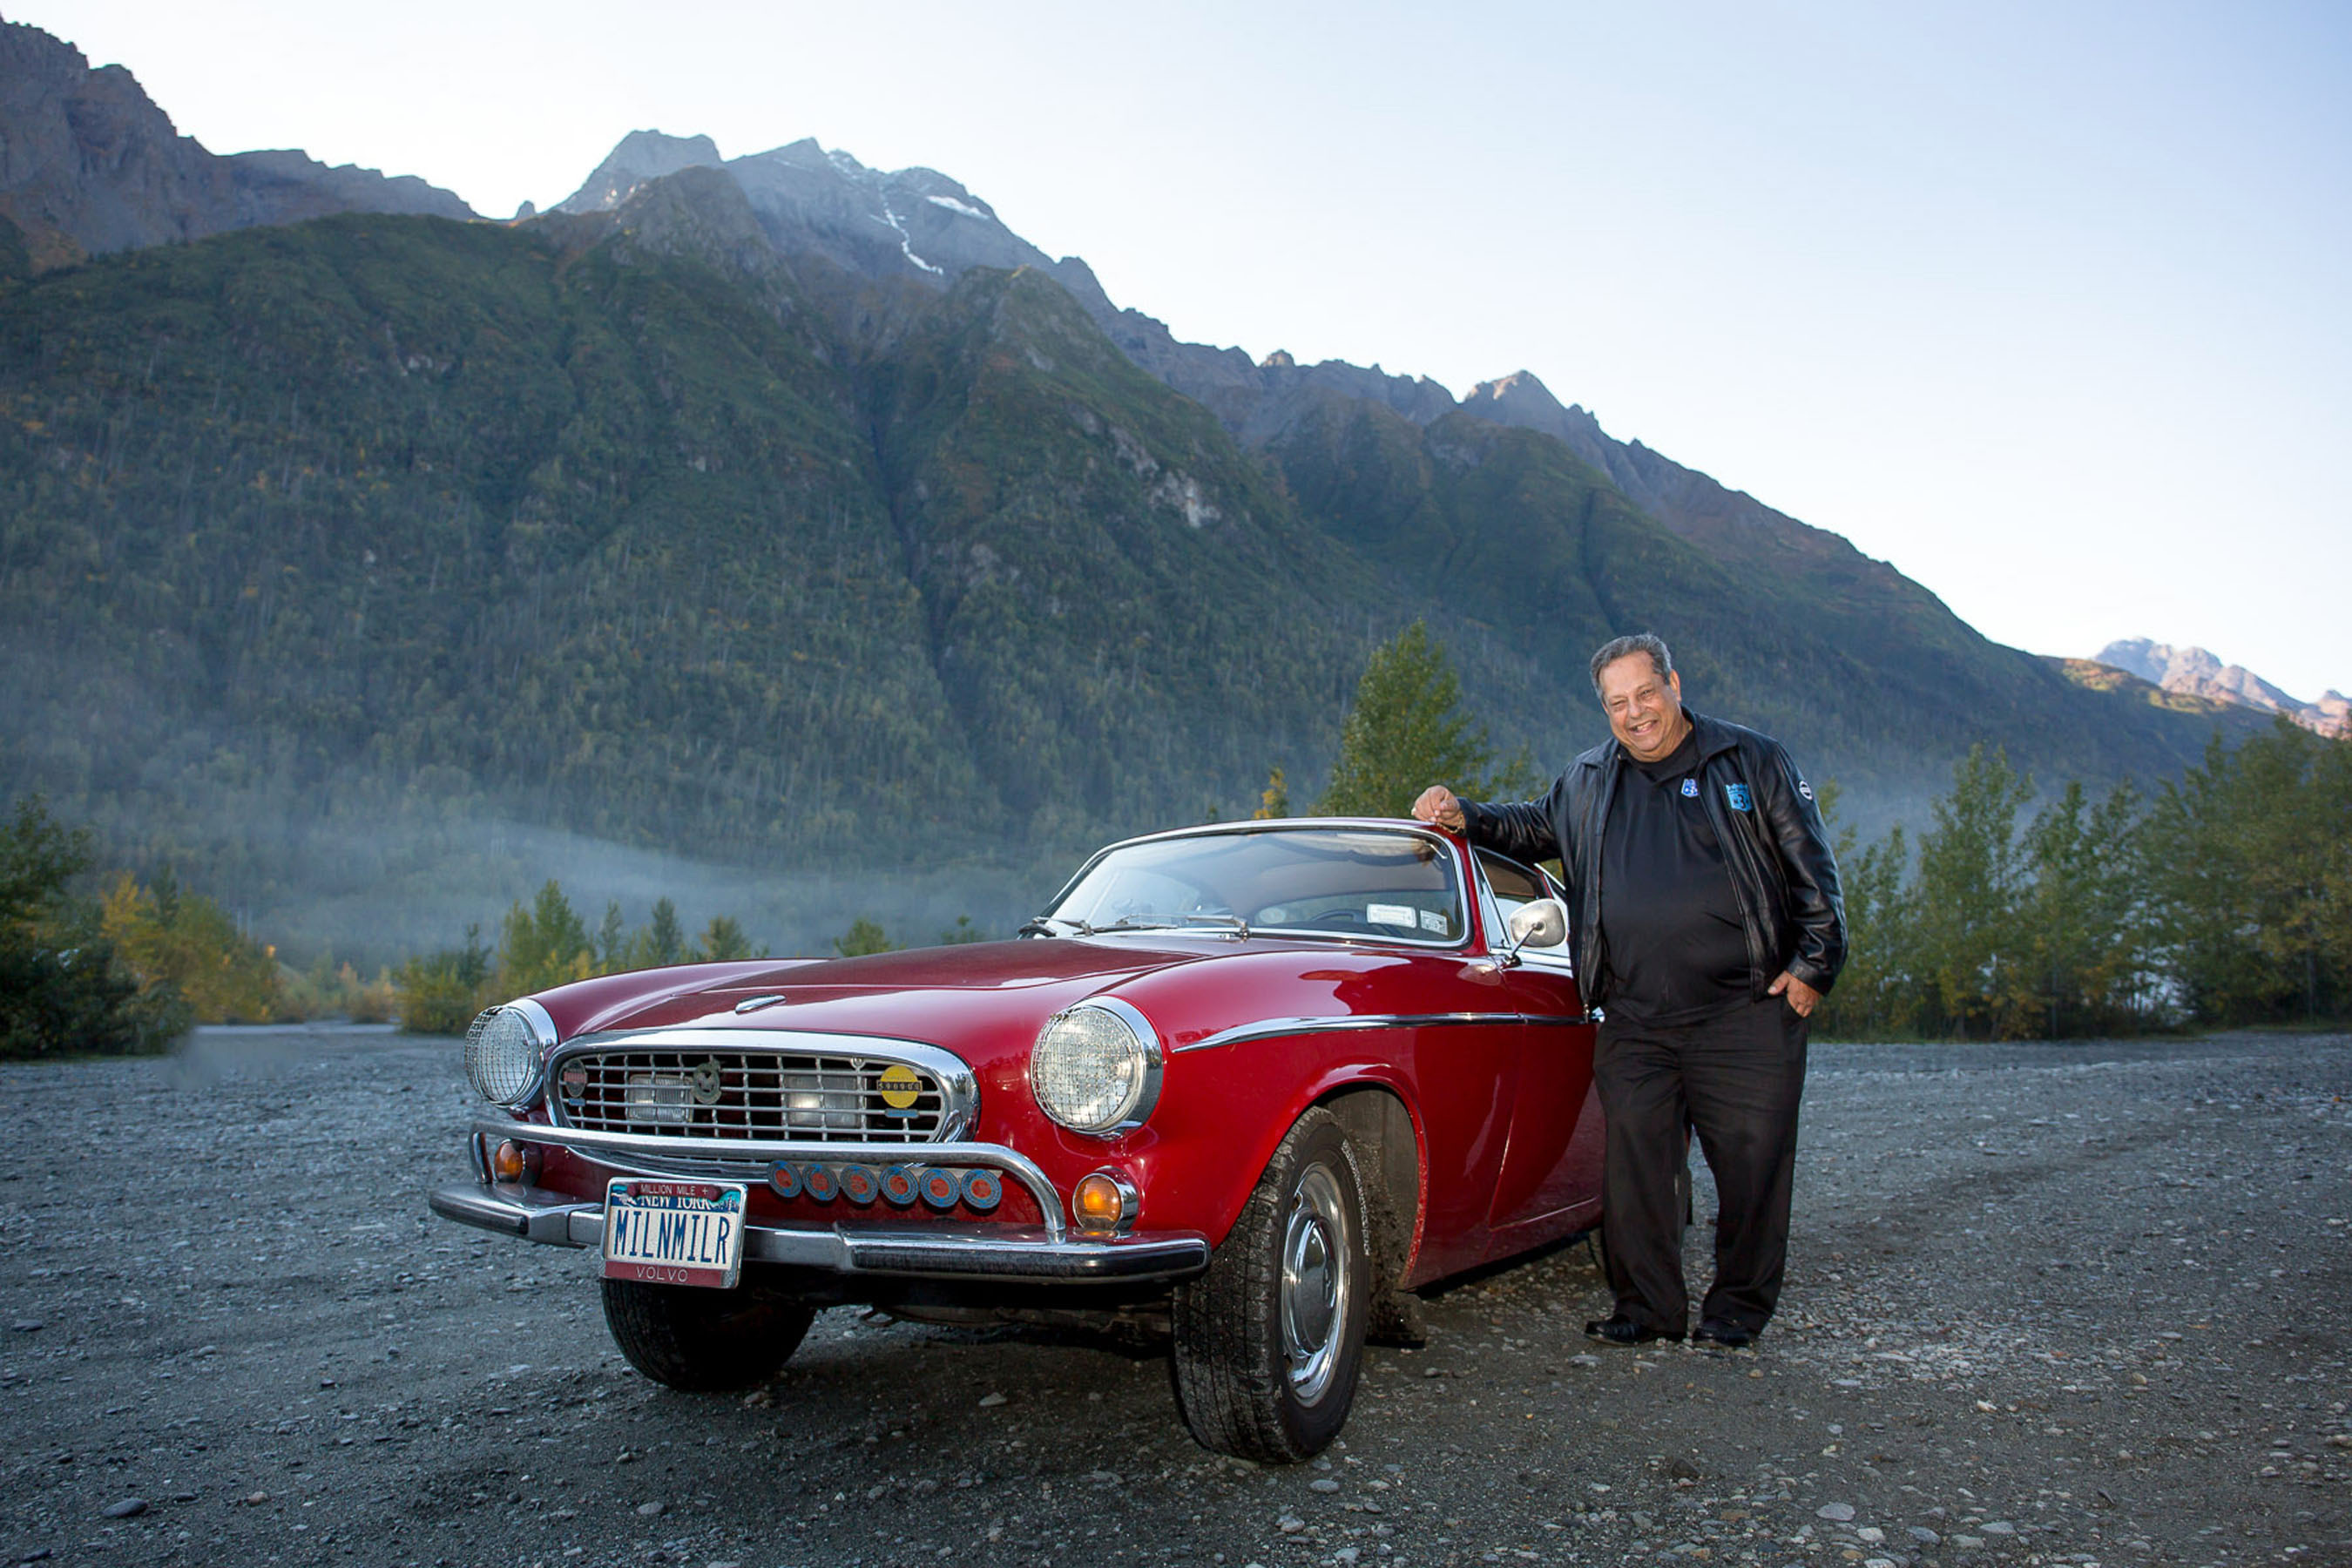 Irv Gordon nears the 3 million mile mark in his Volvo P1800 on the Old Glenn Highway north of Anchorage. Today, Gordon will reach the historic milestone on the Seward Highway along the Turnagain Arm. (PRNewsFoto/Volvo Cars of North America) (PRNewsFoto/VOLVO CARS OF NORTH AMERICA)